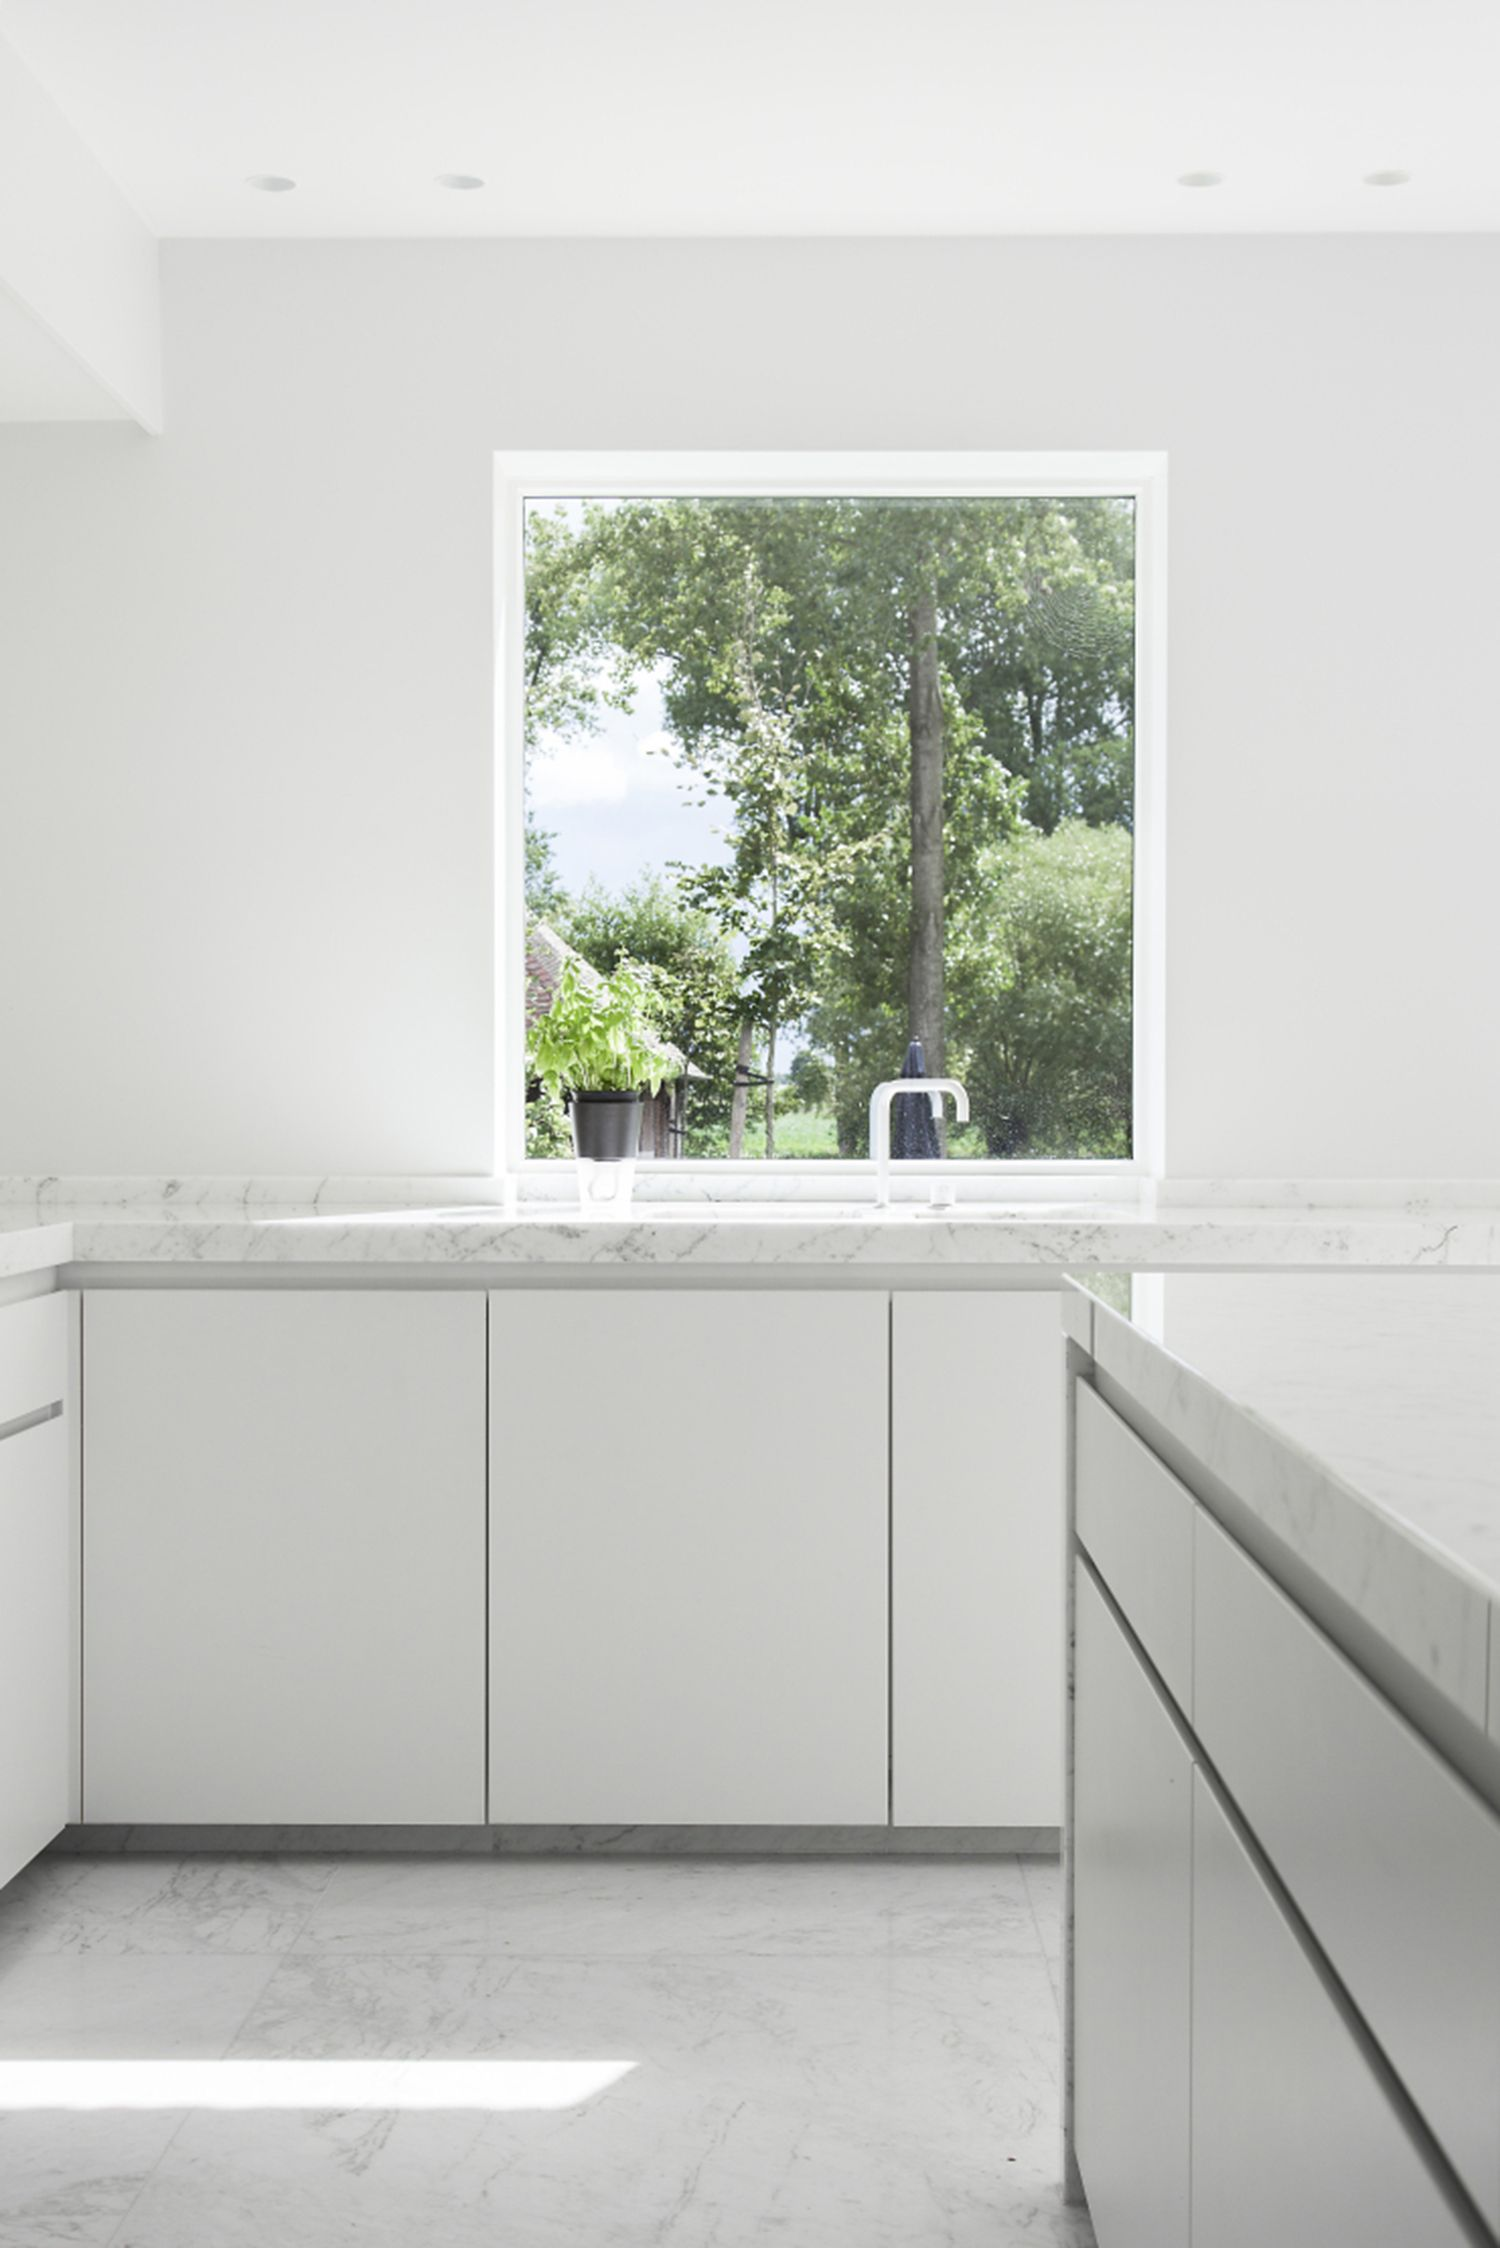 view! a great view to have when you're doing the dishes. This bright kitchen wouldn't look the same with lots of colours. Keeping this kitchen very light makes you focus on the outside. What a beautiful garden view.